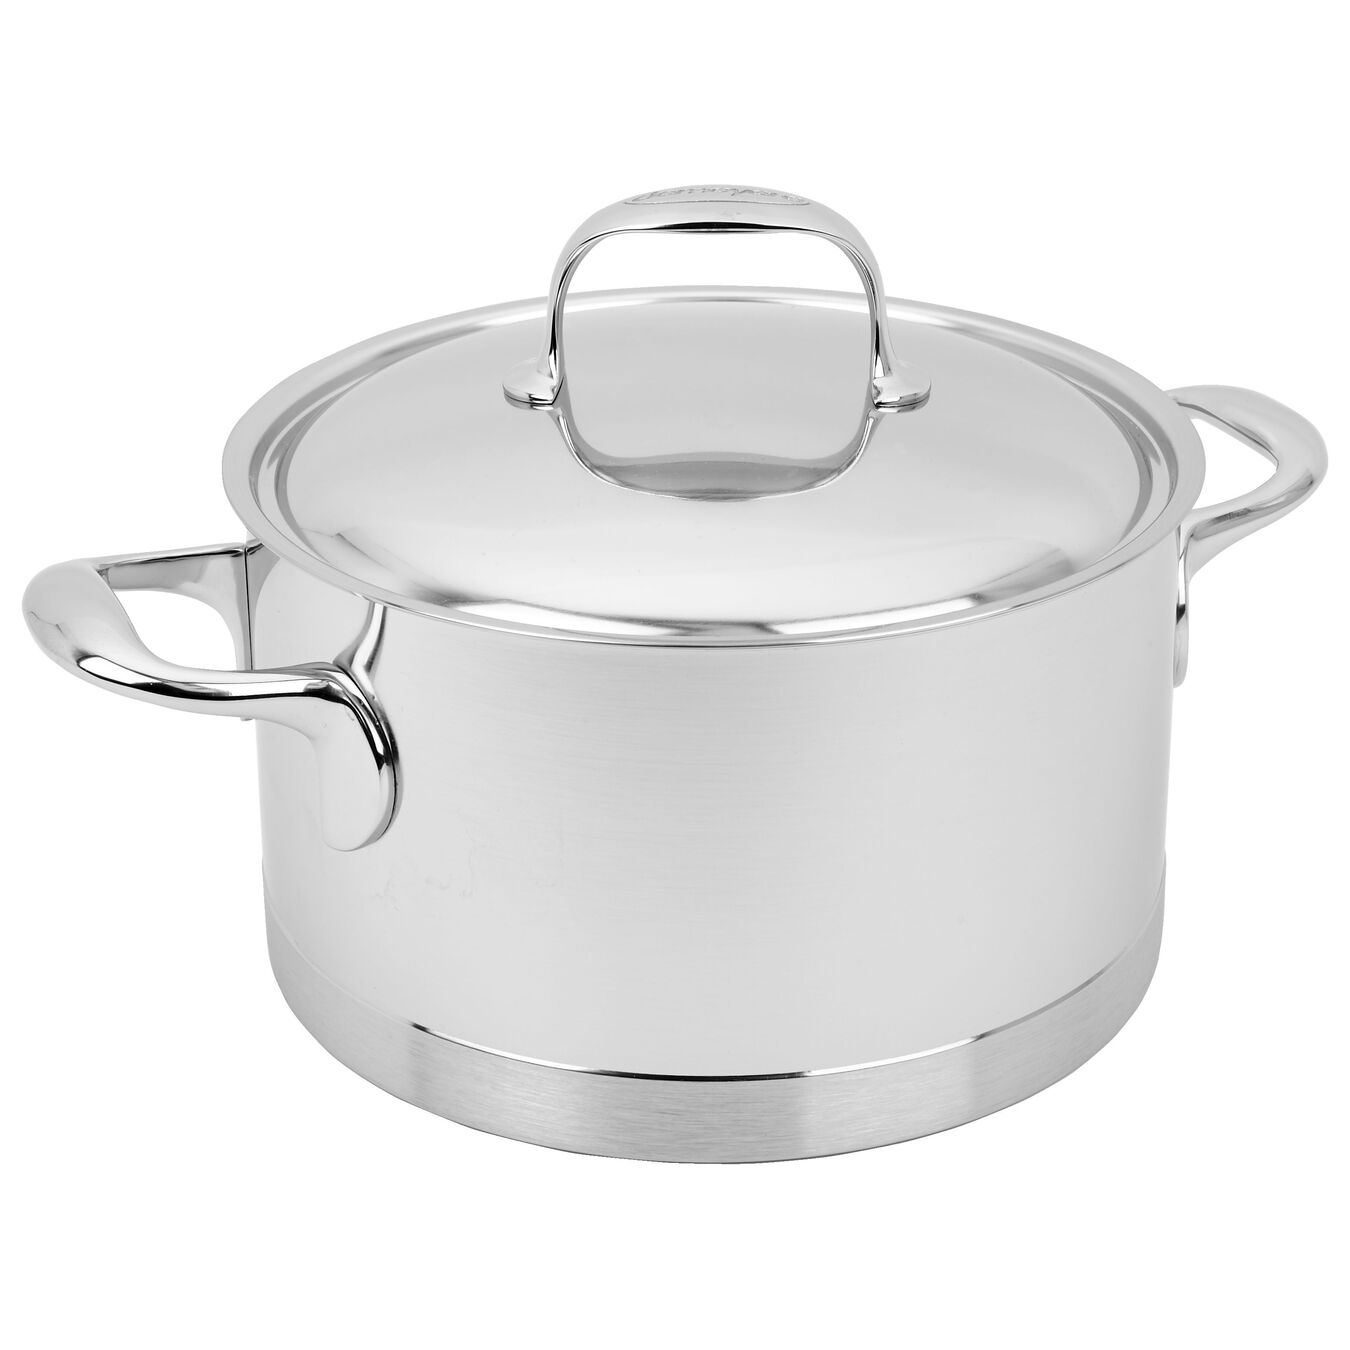 4 l 18/10 Stainless Steel Stew pot with lid,,large 3